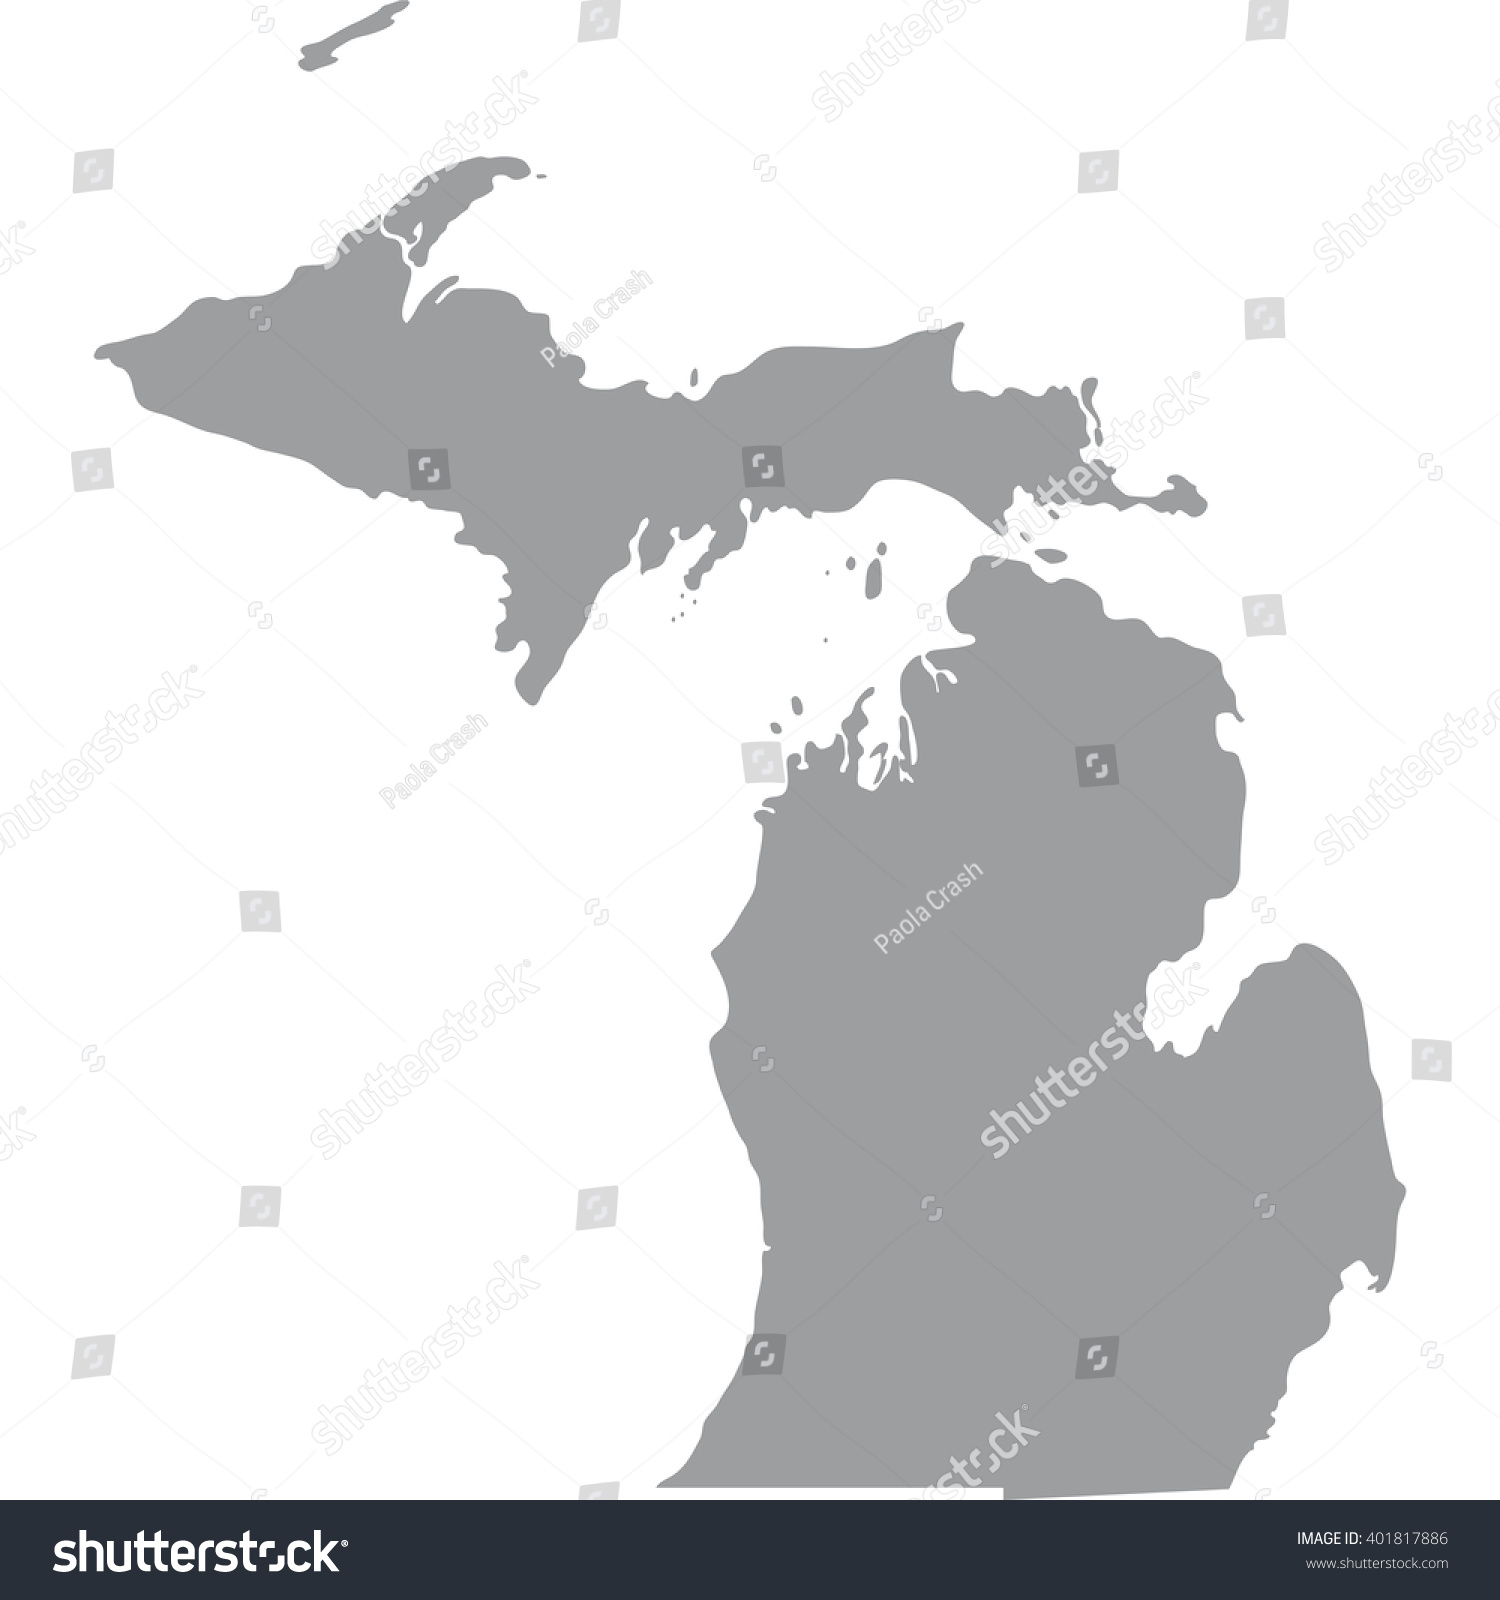 Map Us State Michigan Stock Vector Shutterstock - Michigan on a us map